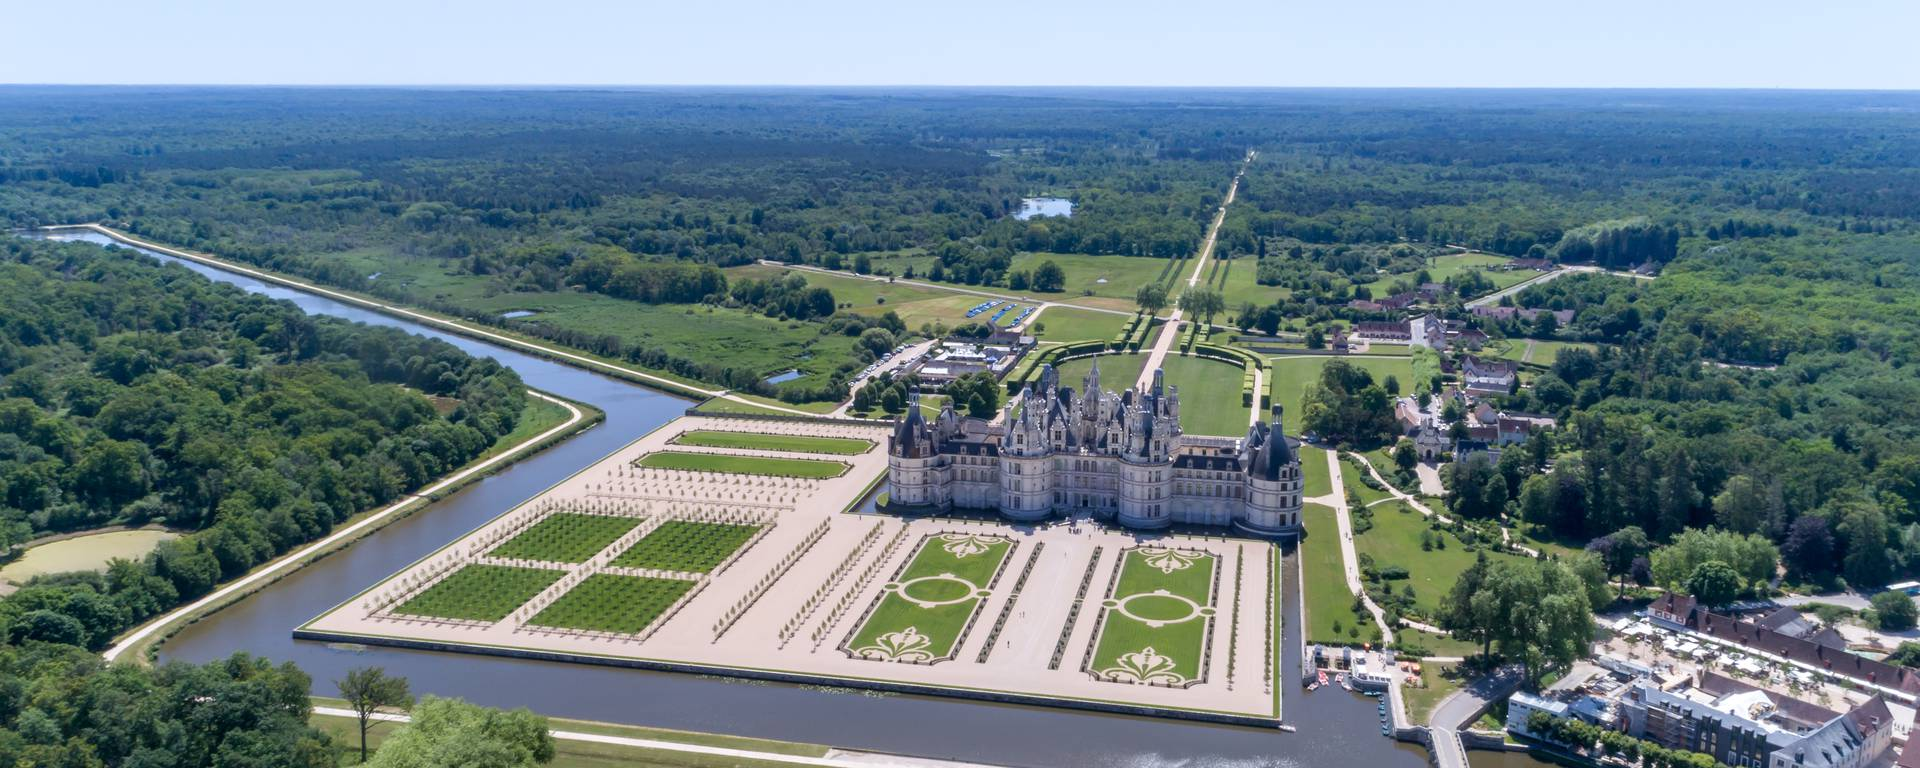 The gardens of Chambord from the air